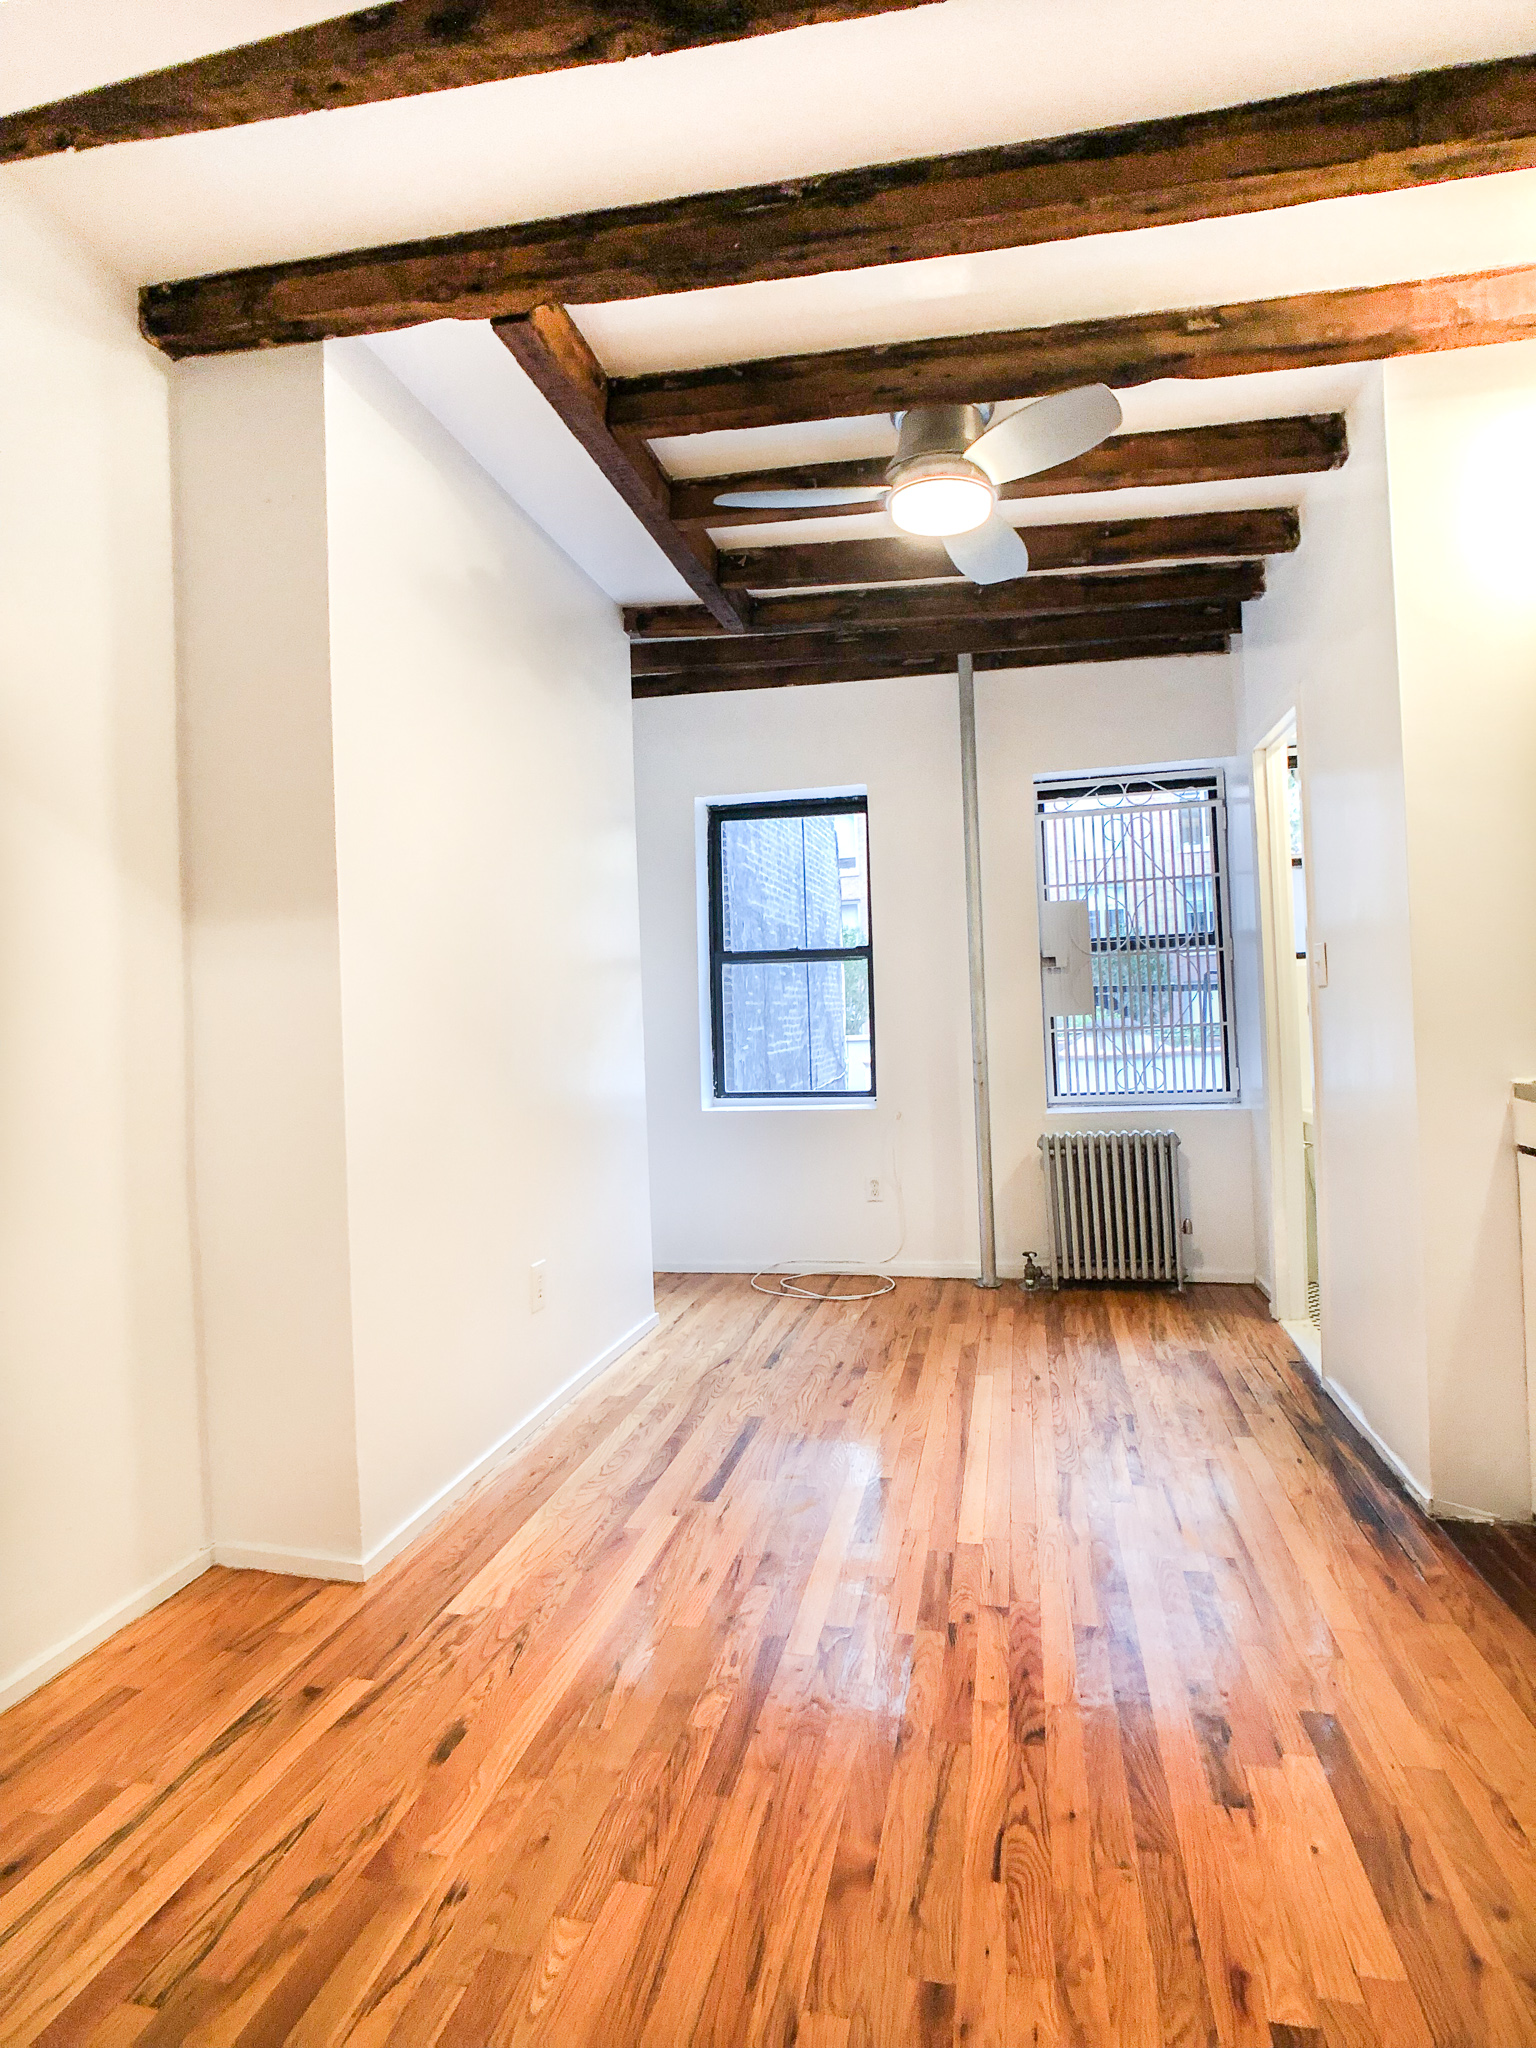 531 E 13 Street #6 - Spacious & Bright Studio in East Village!Bright studio offers high ceilings, hardwood floors, exposed brick as well as open kitchenette. Located in a charming walk up building on a quiet block of East village. Close to public transportation, cafes, shops and night life! Rent: $1,900 /monthTerms: 12 - 12 MonthsAvailable: Immediate